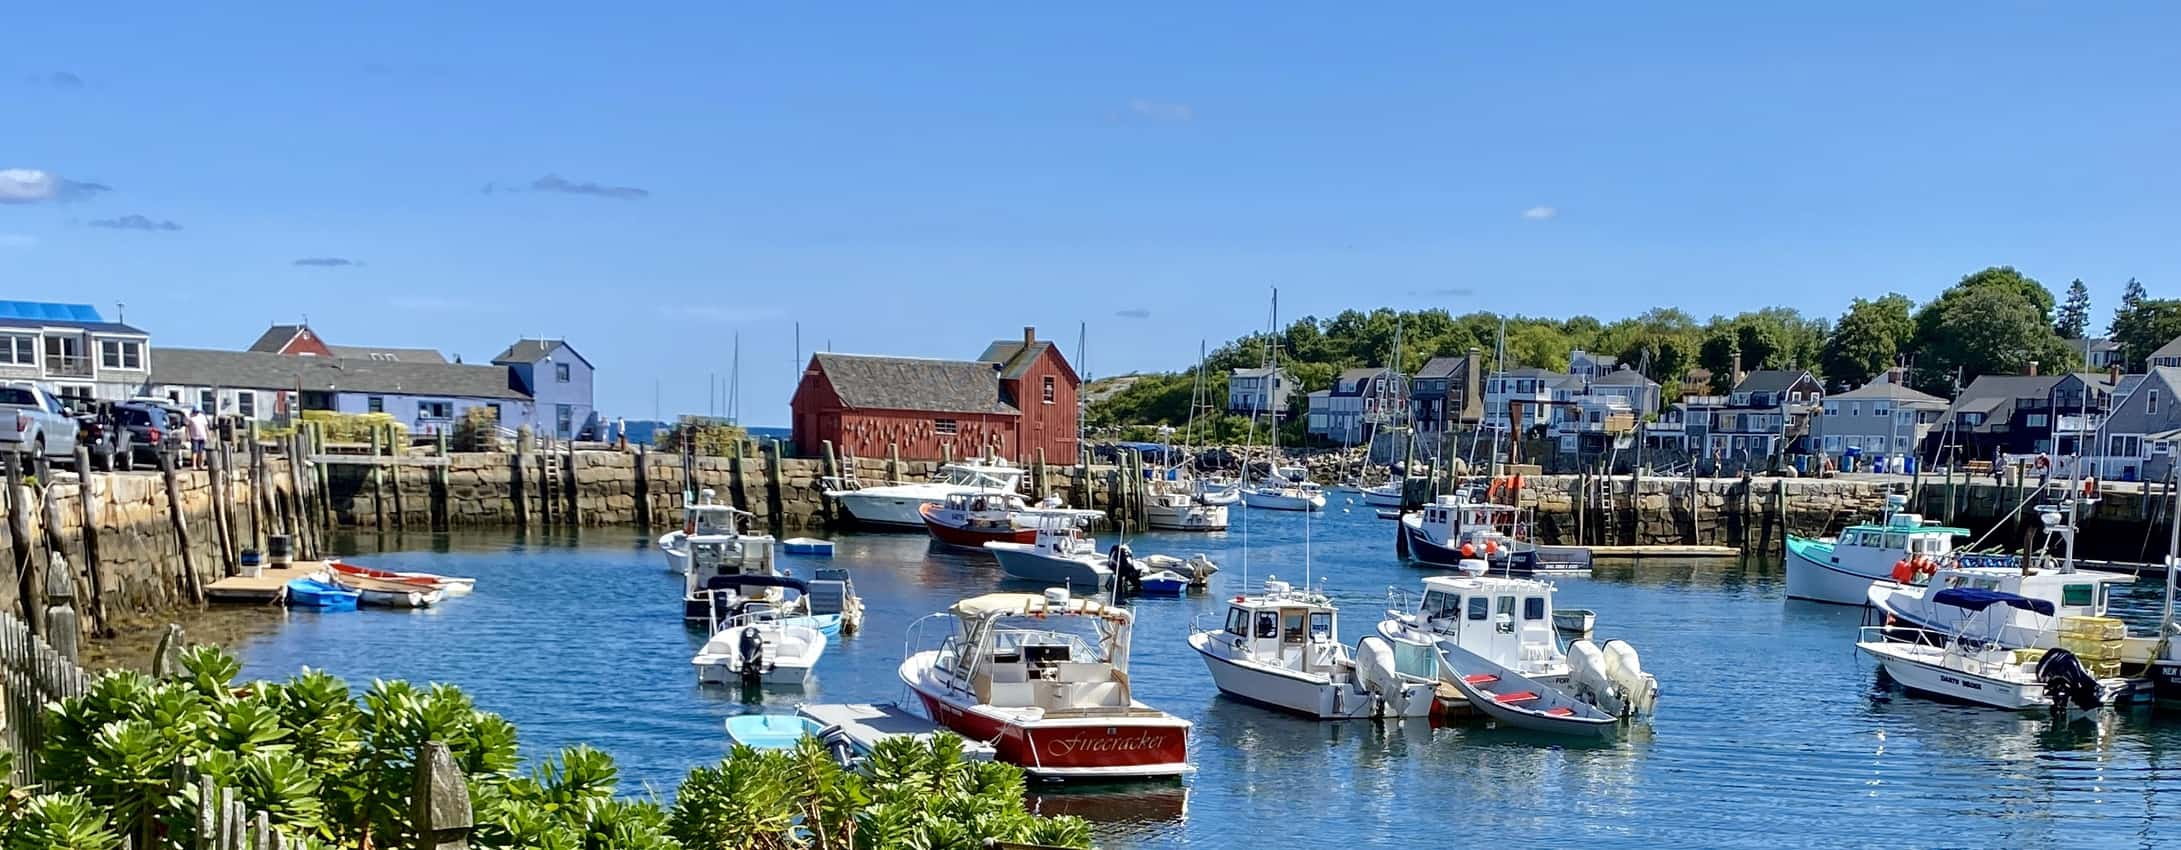 Rockport Harbor's centerpiece is the red fishing shack called Motif #1.